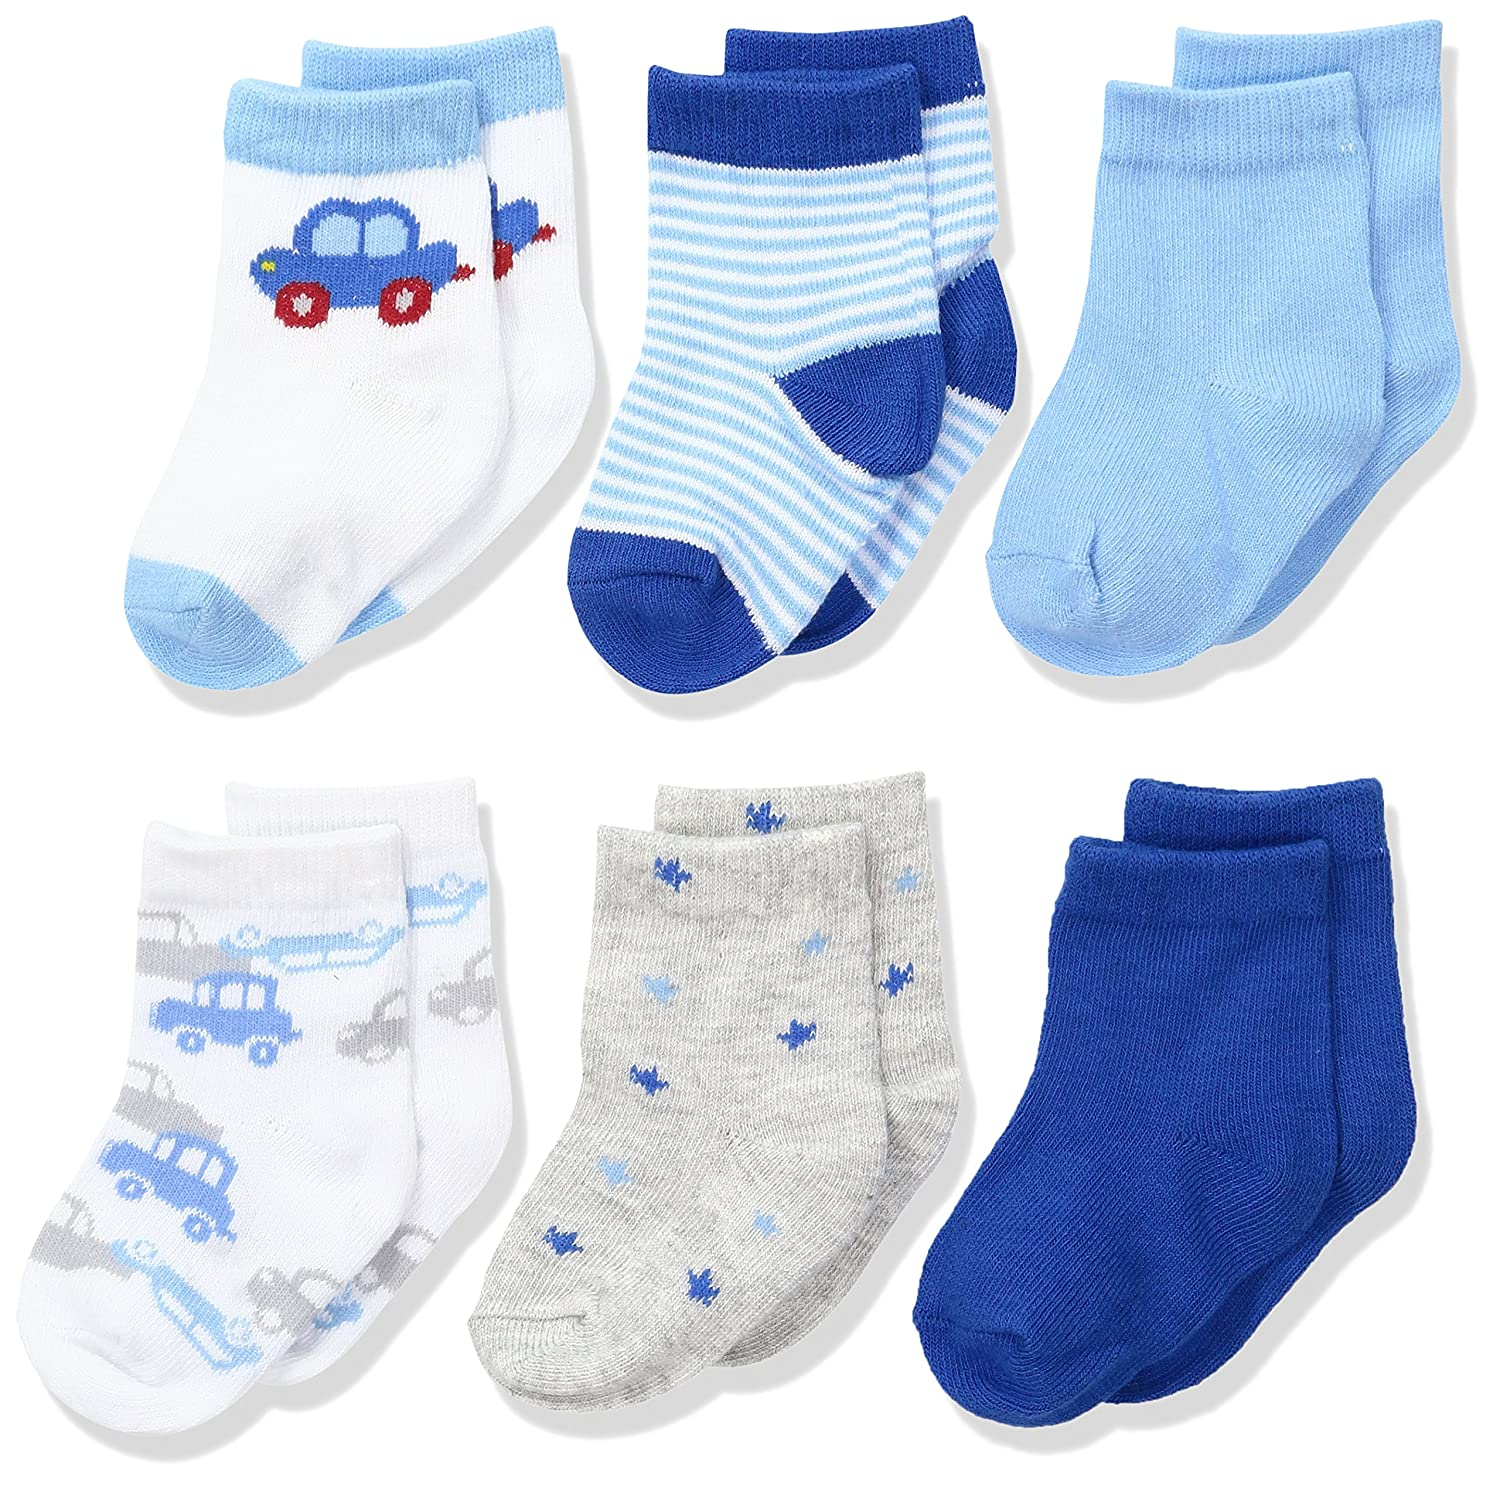 Rene Rofe Baby Newborn and Infant 6 Pack Socks, car 0-9 Months RSC189B